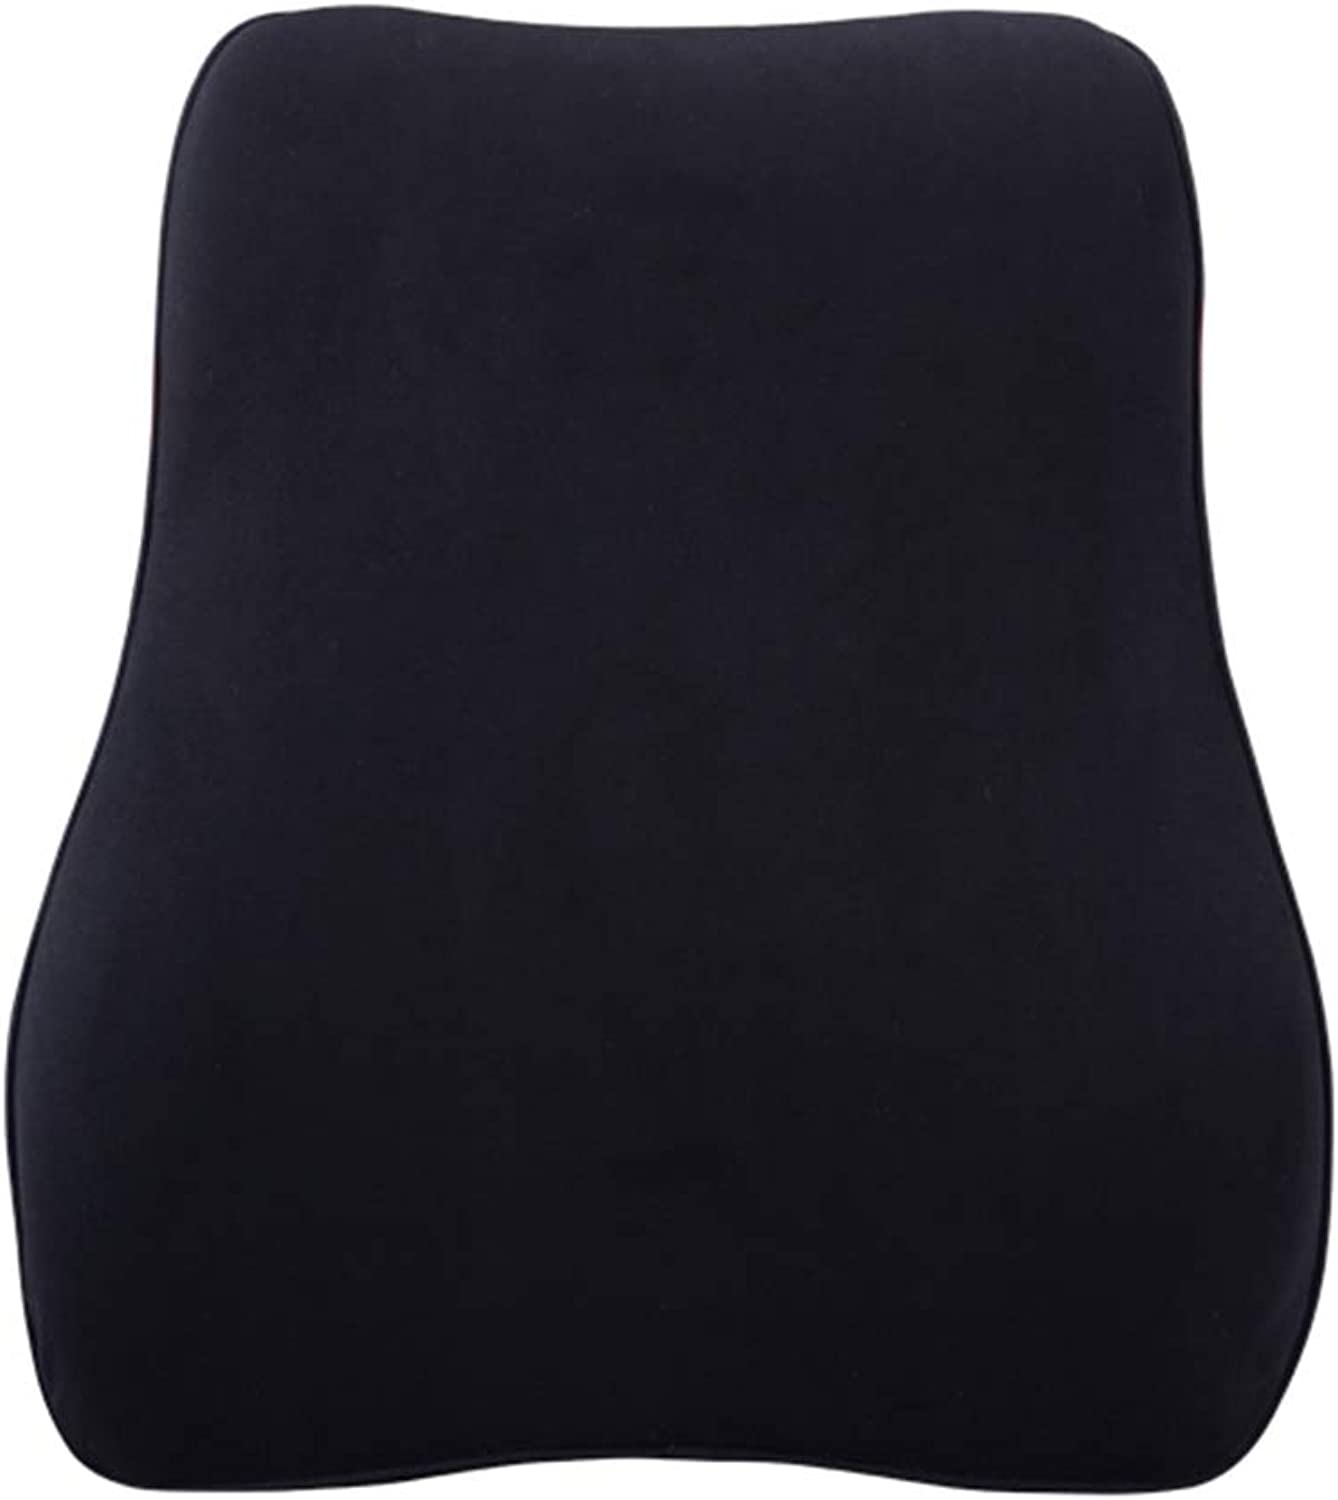 Back Cushion Lumbar Support Pillow Ergonomic Back Support Car Memory Foam Neck Predection Four Seasons GAOFENG (color   Black, Size   Lumbar Support)